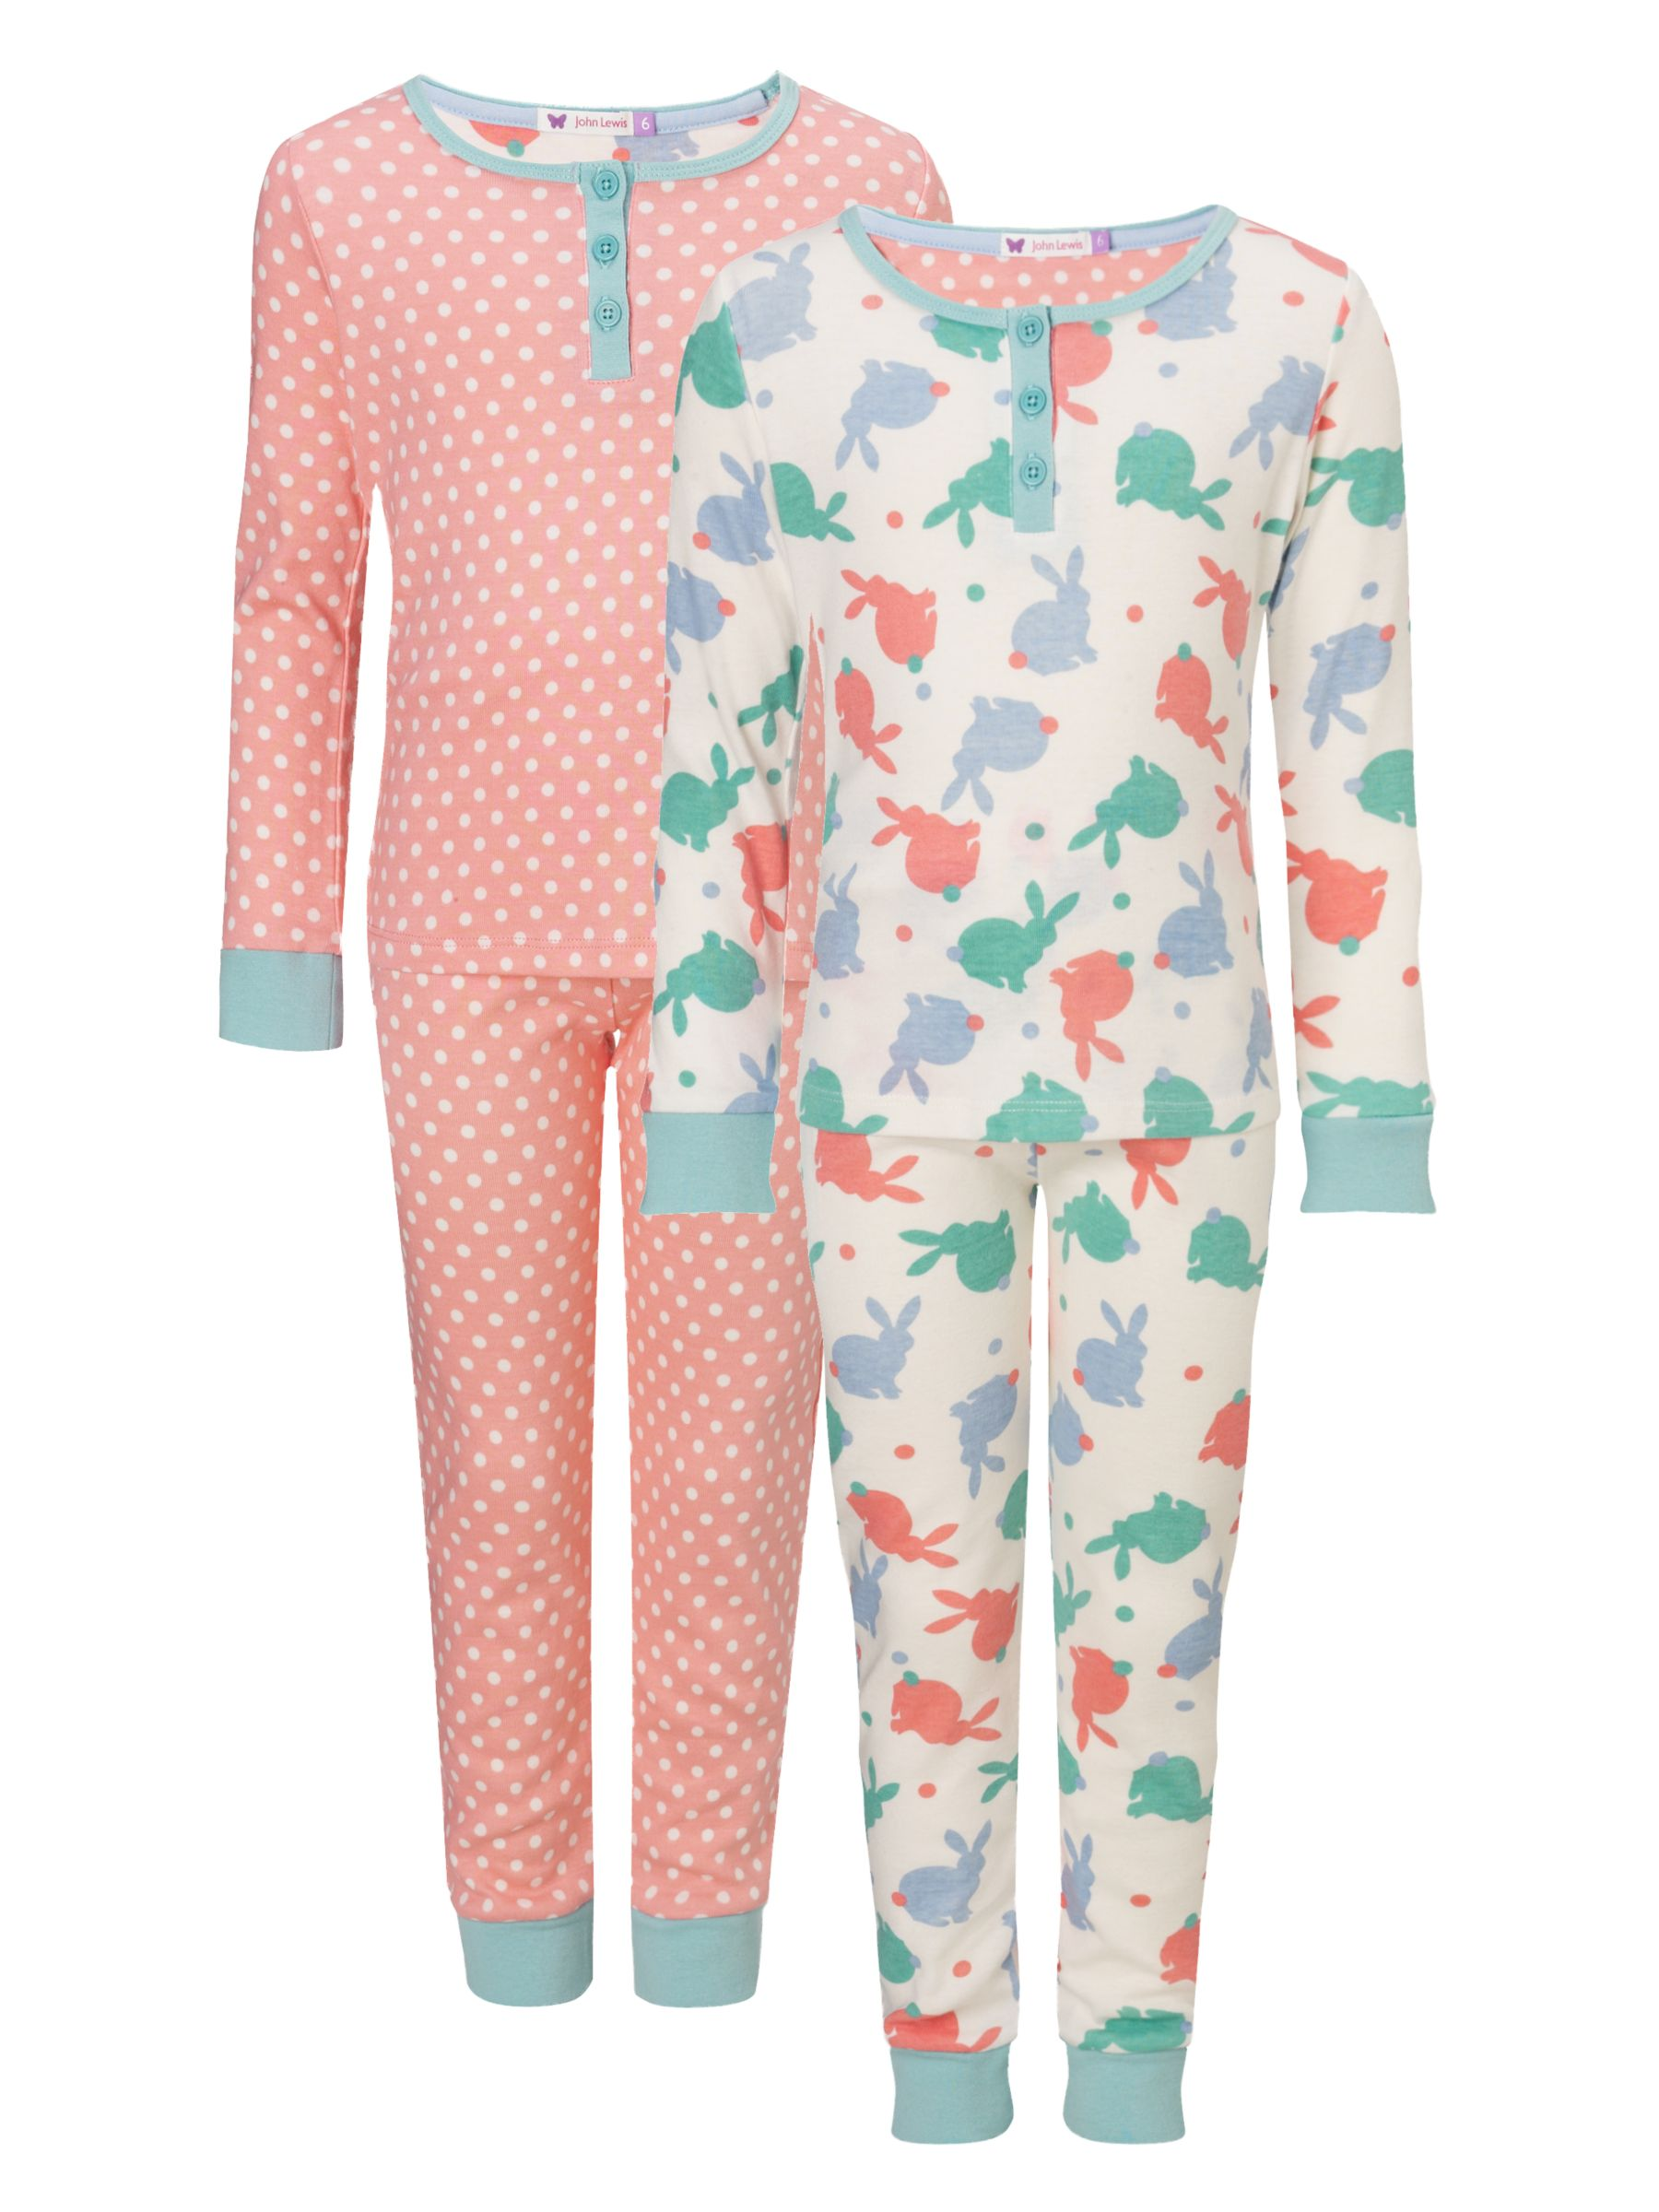 John Lewis Girl Bunny and Spots Long Sleeve Pyjamas, Pack of 2, Multi